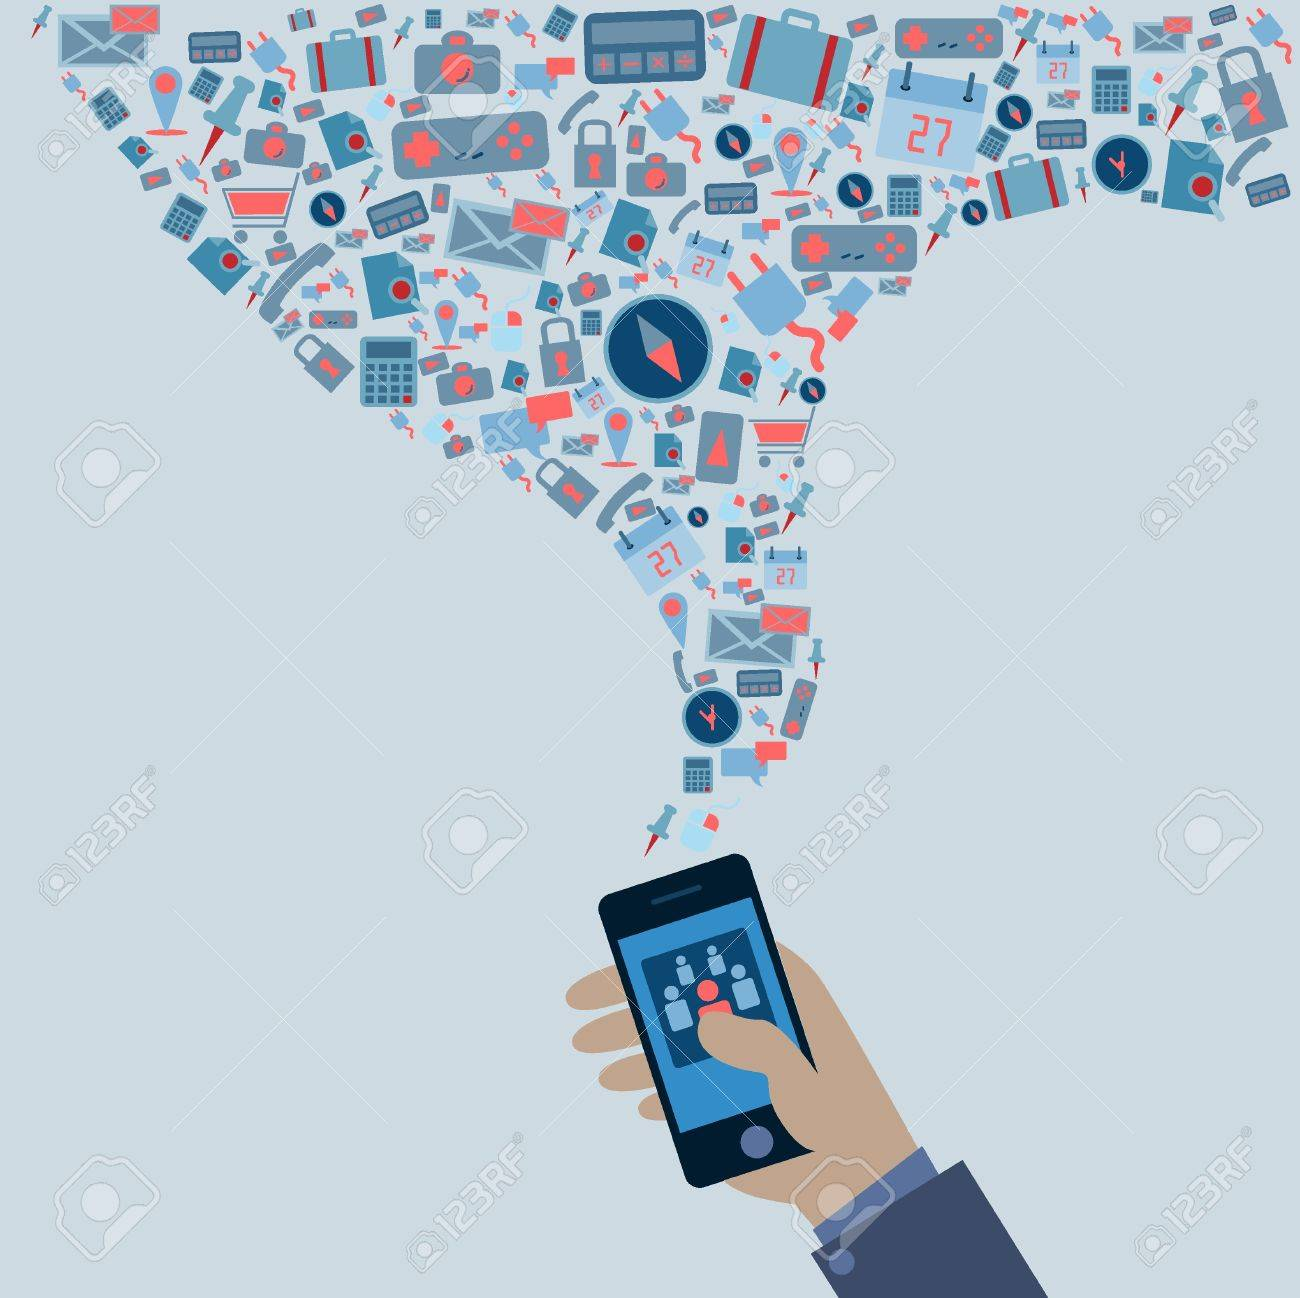 Smartphone Stock Vector - 21150278